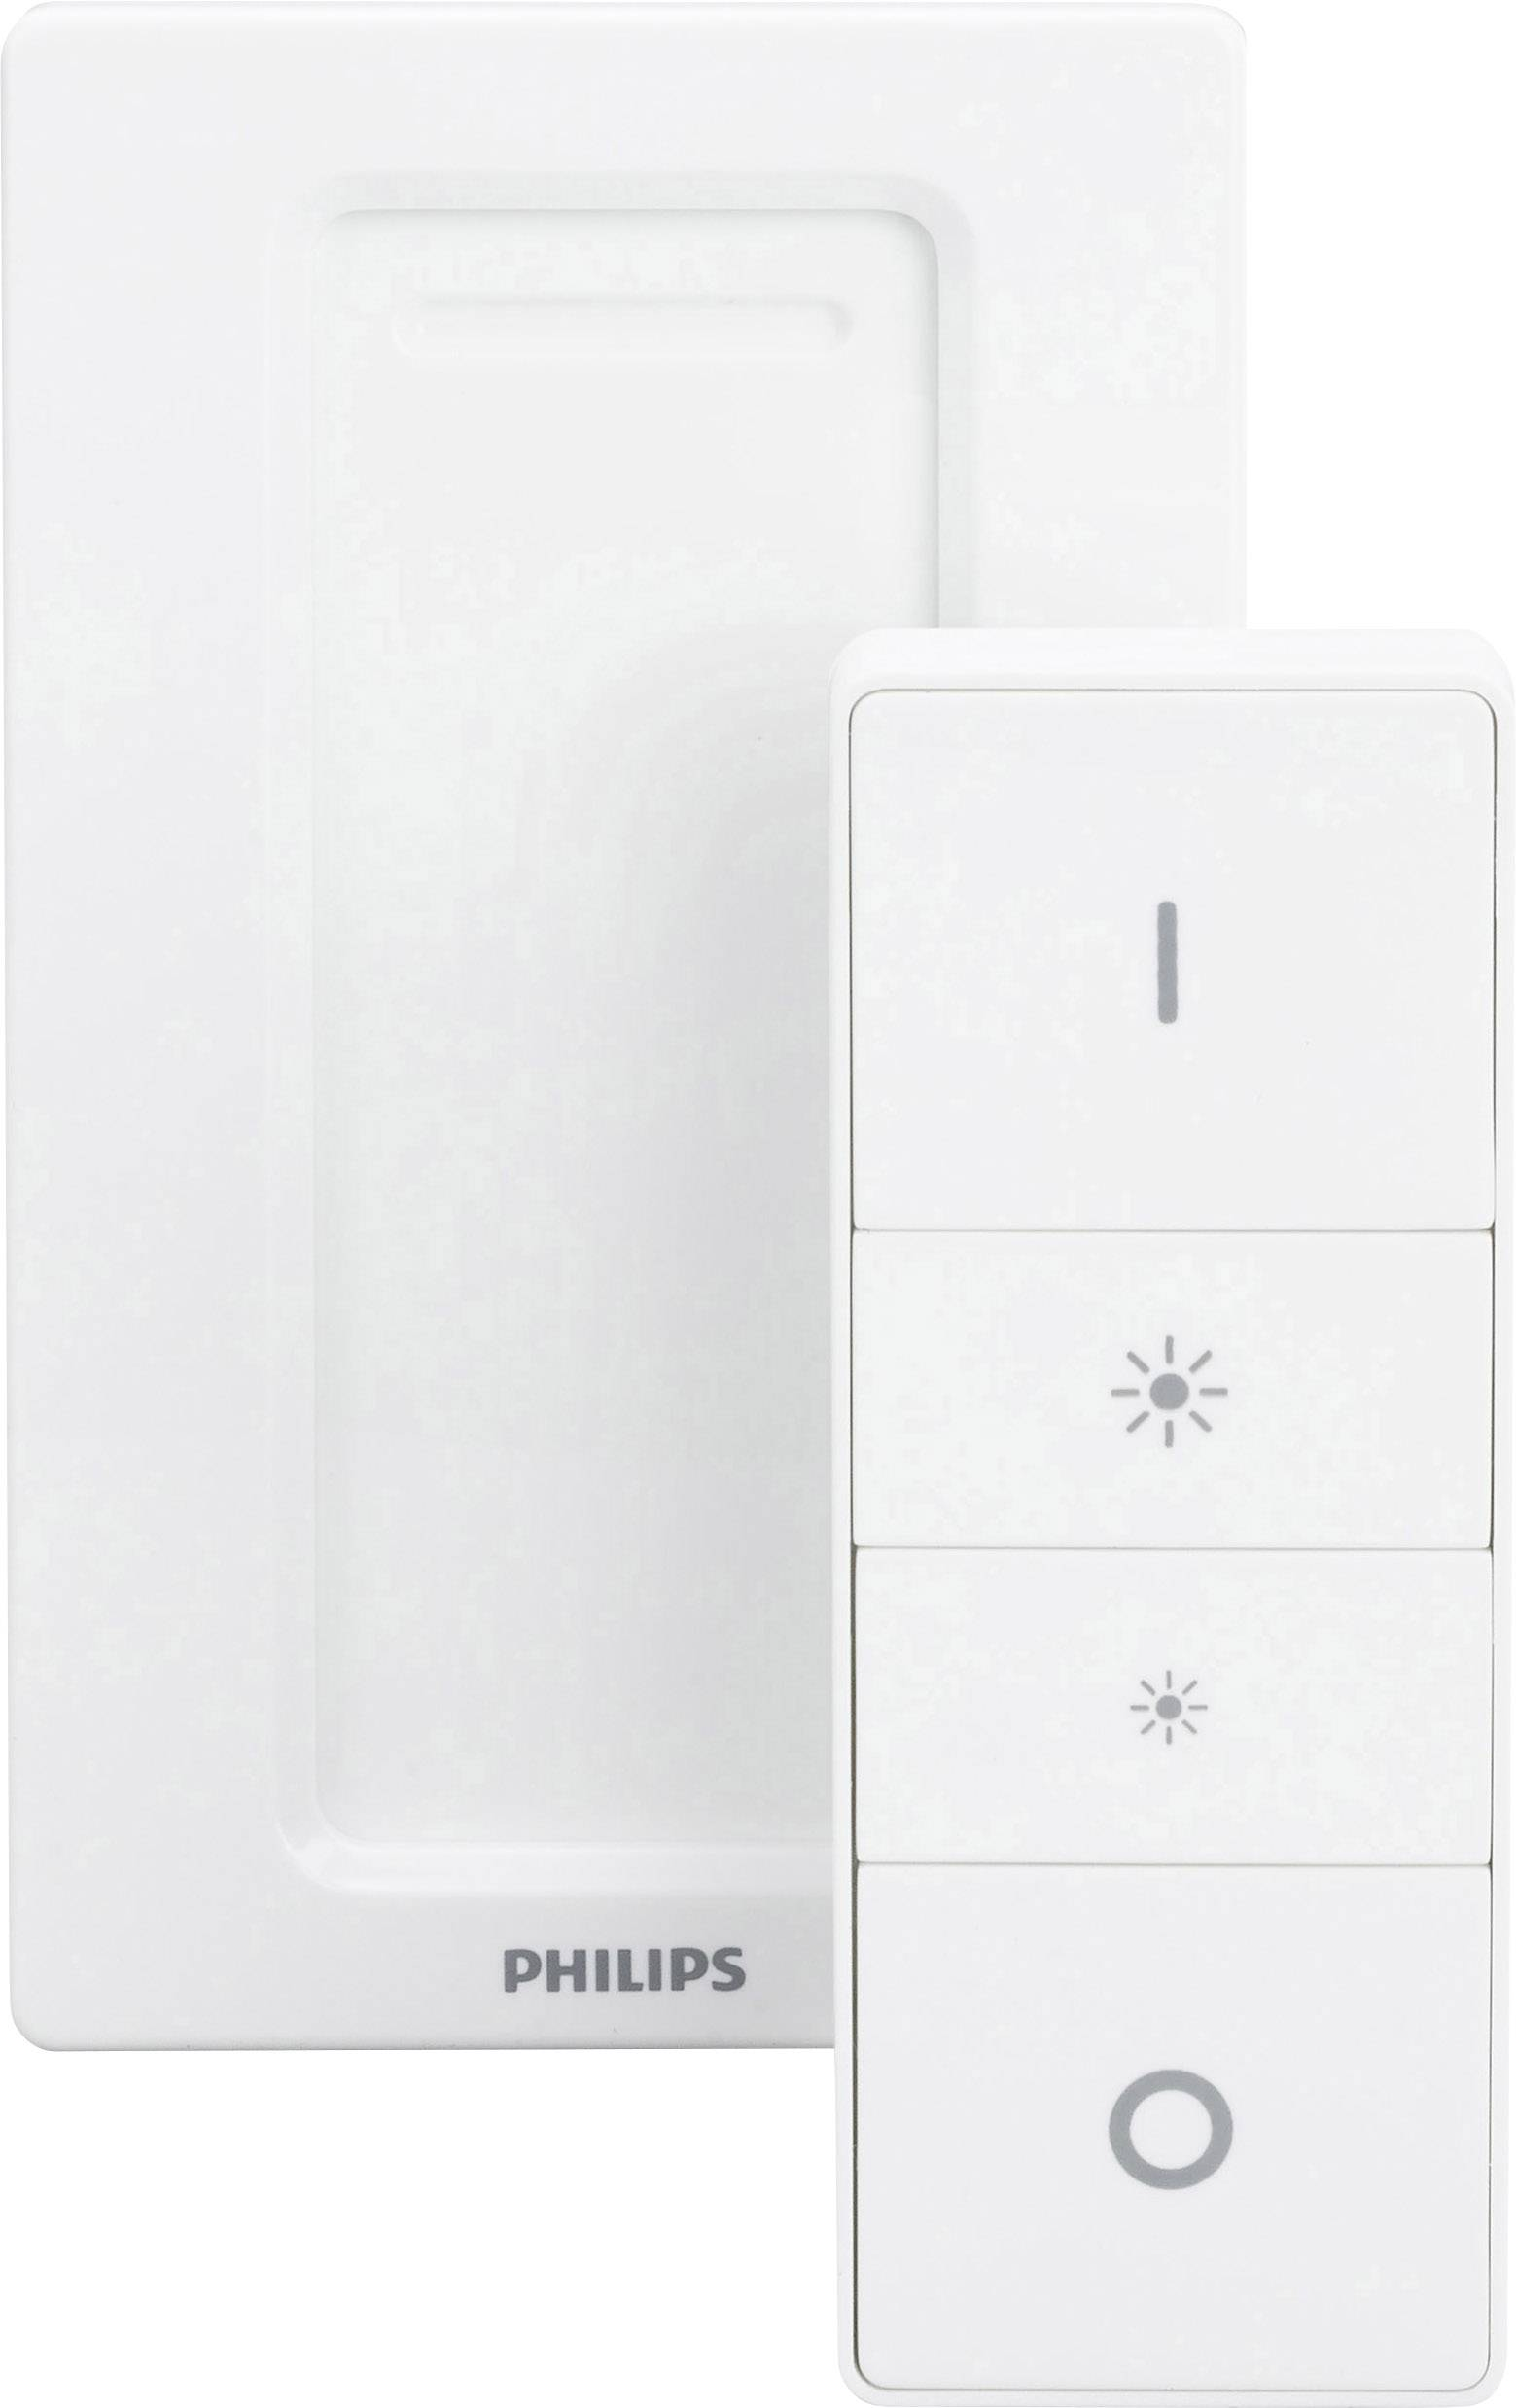 Draadloze Switch Philips Lighting Hue Draadloze Dimmer Dimmer Switch